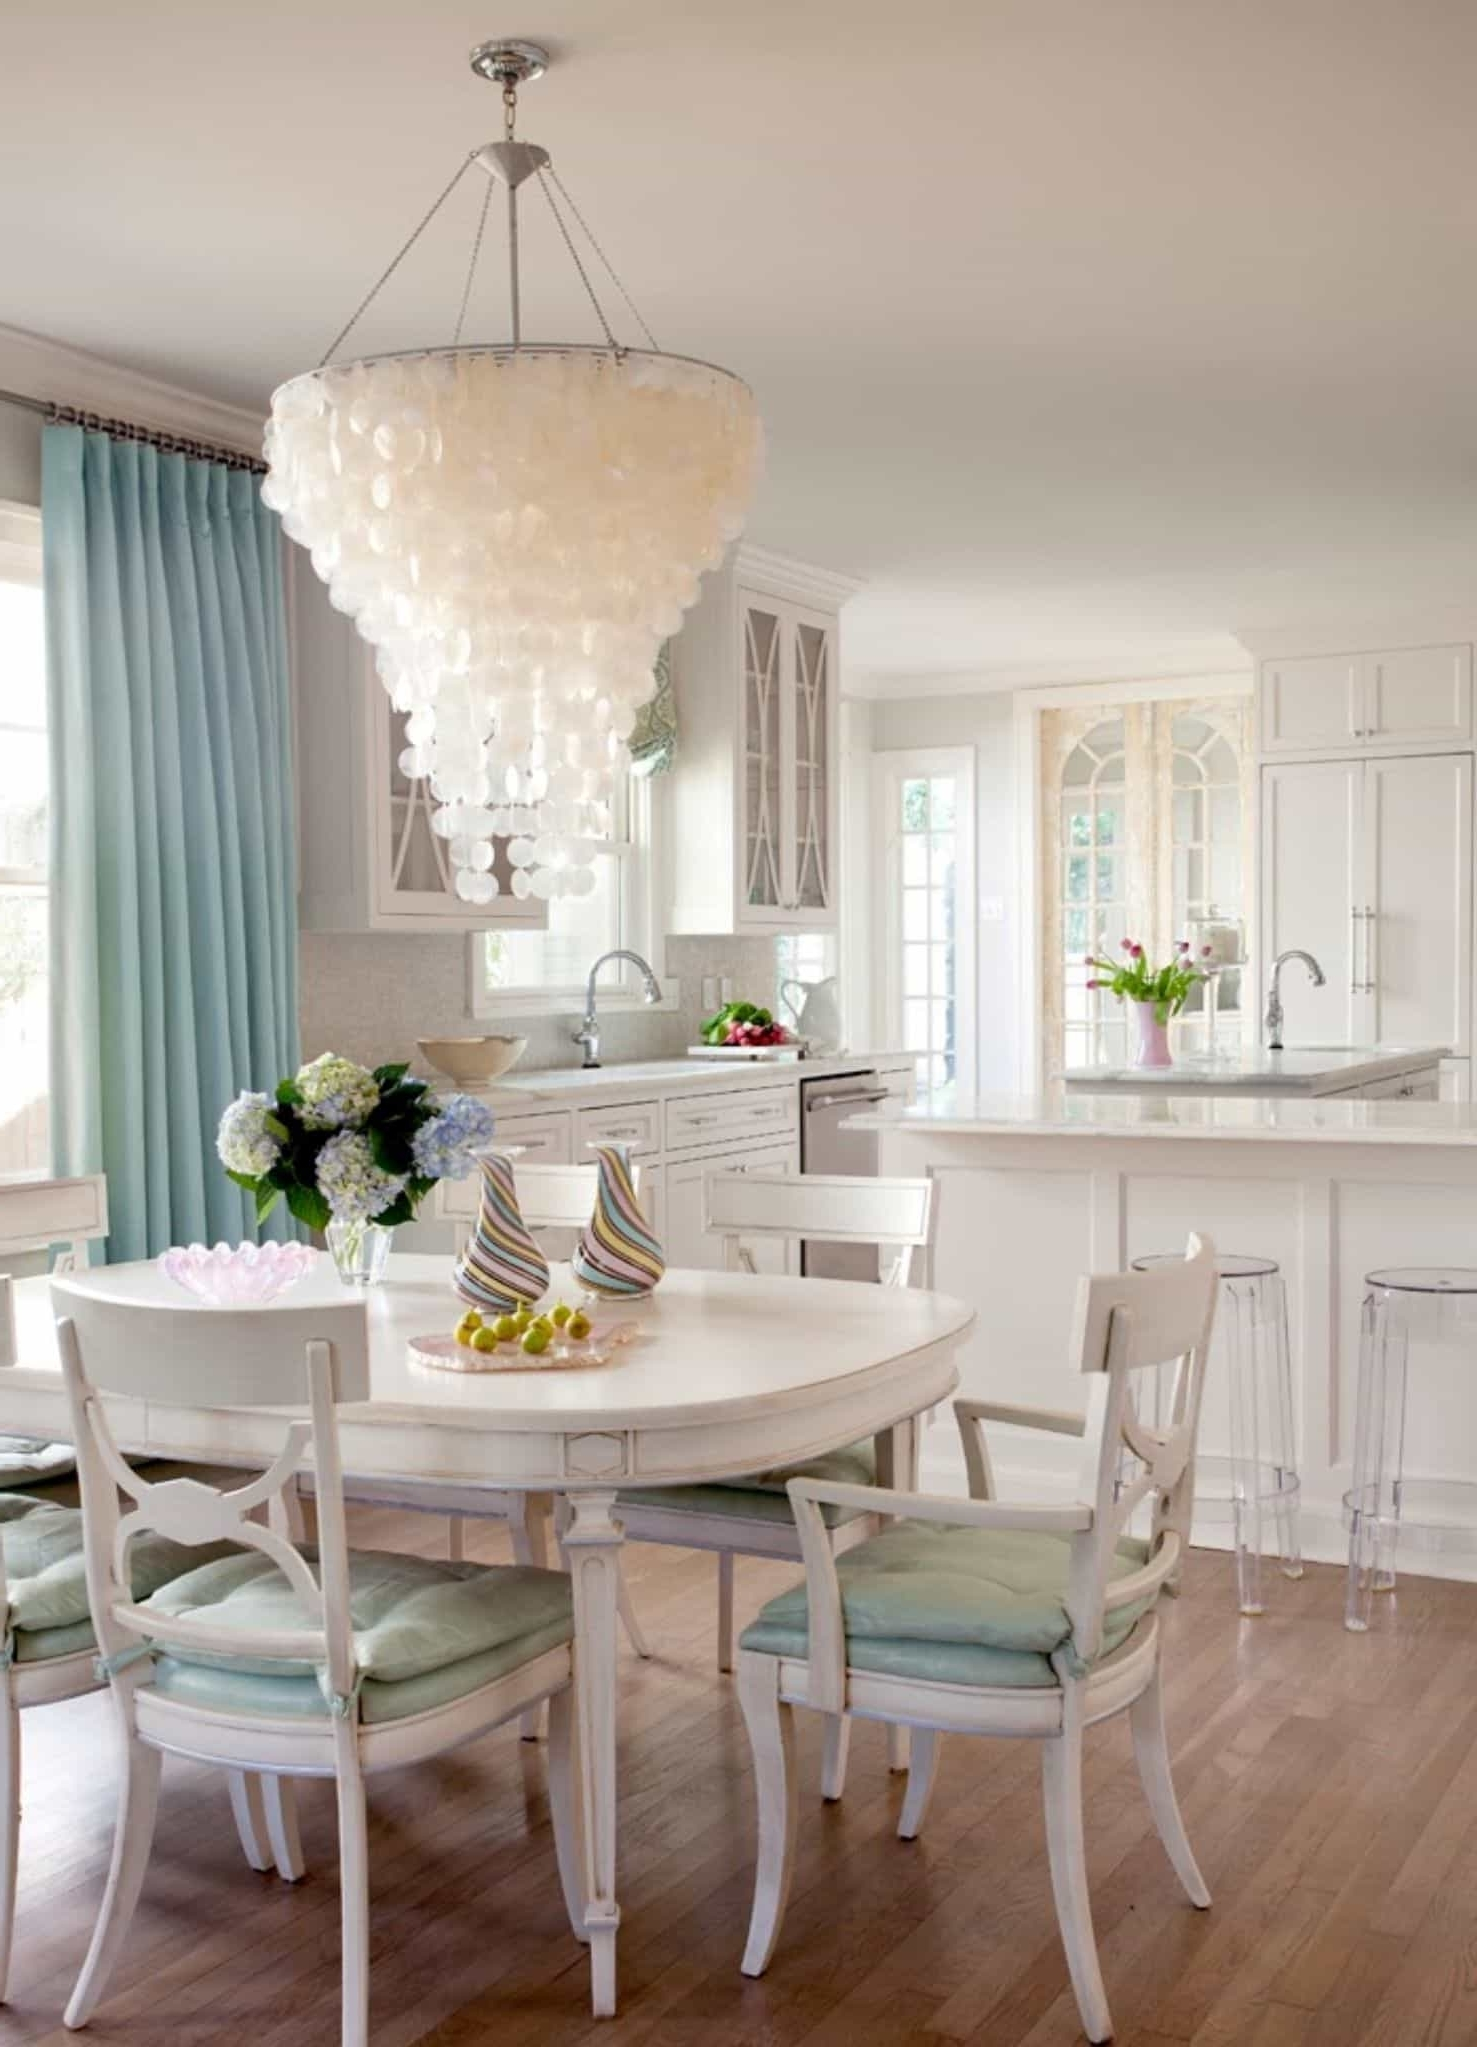 Lamp Over Dining Tables With Newest Large Capiz Shell Chandelier Over White Dining Table And Chairs In (View 16 of 25)